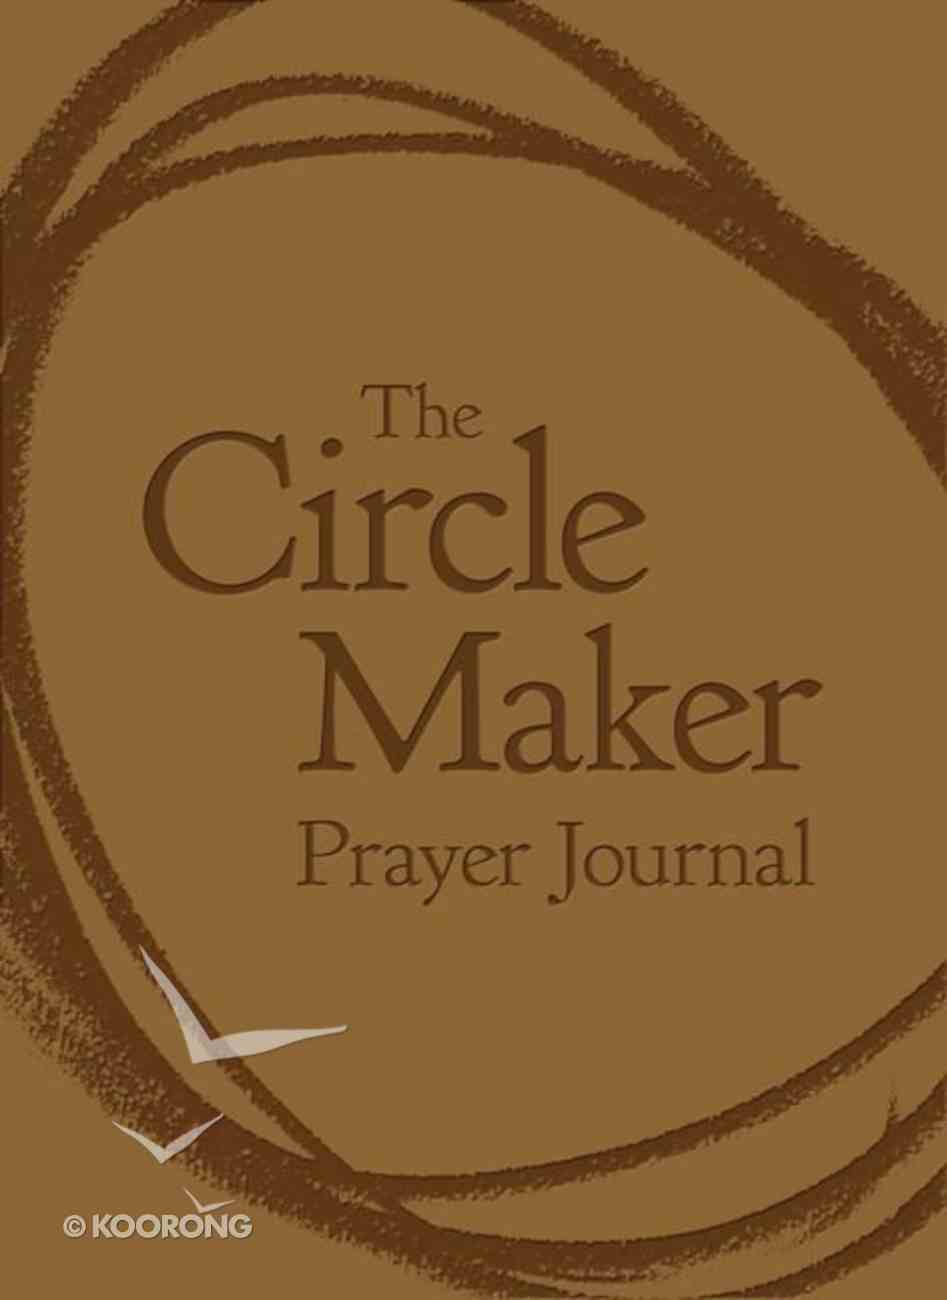 The Circle Maker Prayer Journal Imitation Leather